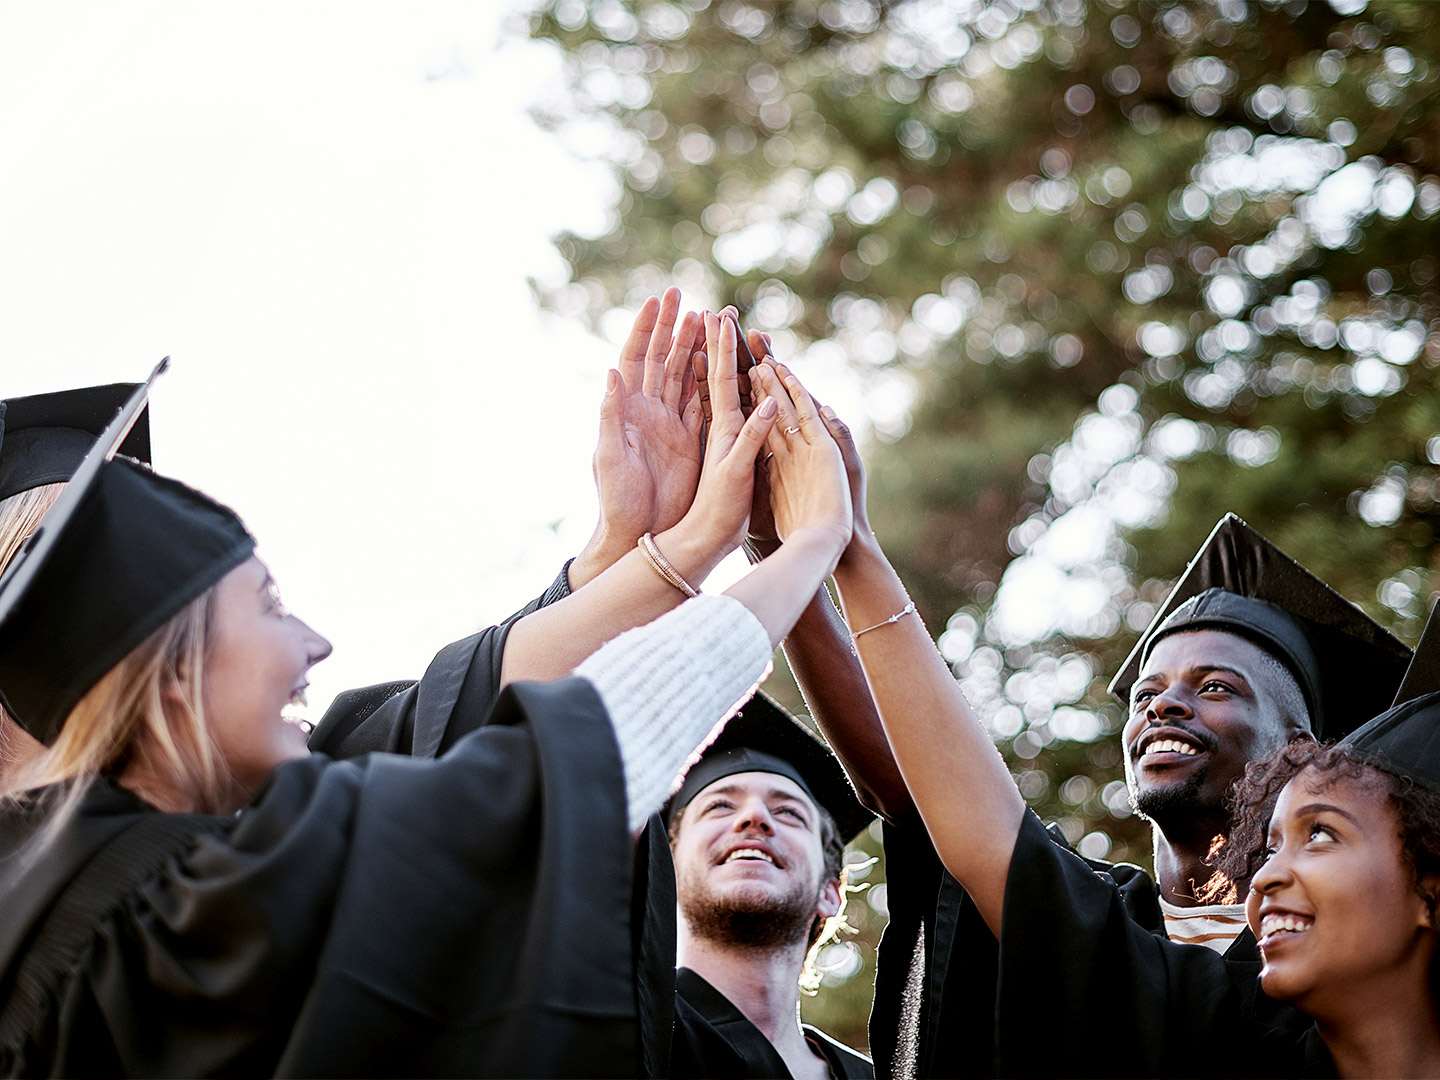 Group of smiling students in their graduation caps and gowns holding their hands together in the center